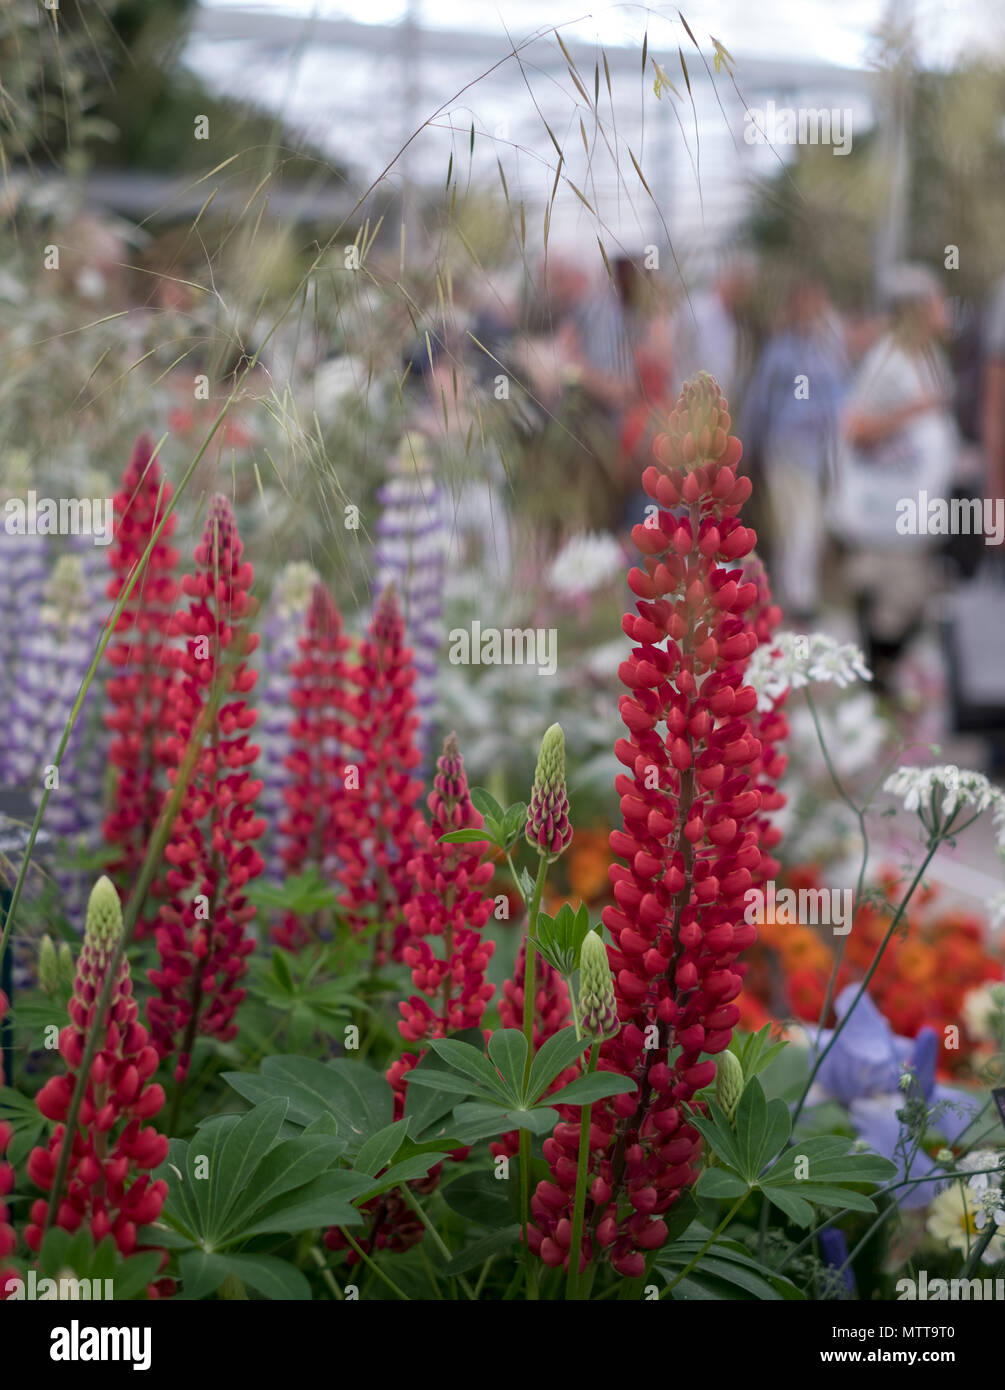 London UK, 2018. Stunning red lupins in foreground at Chelsea Flower Show hosted by the Royal Horticultural Society. Visitors blurred in background. - Stock Image